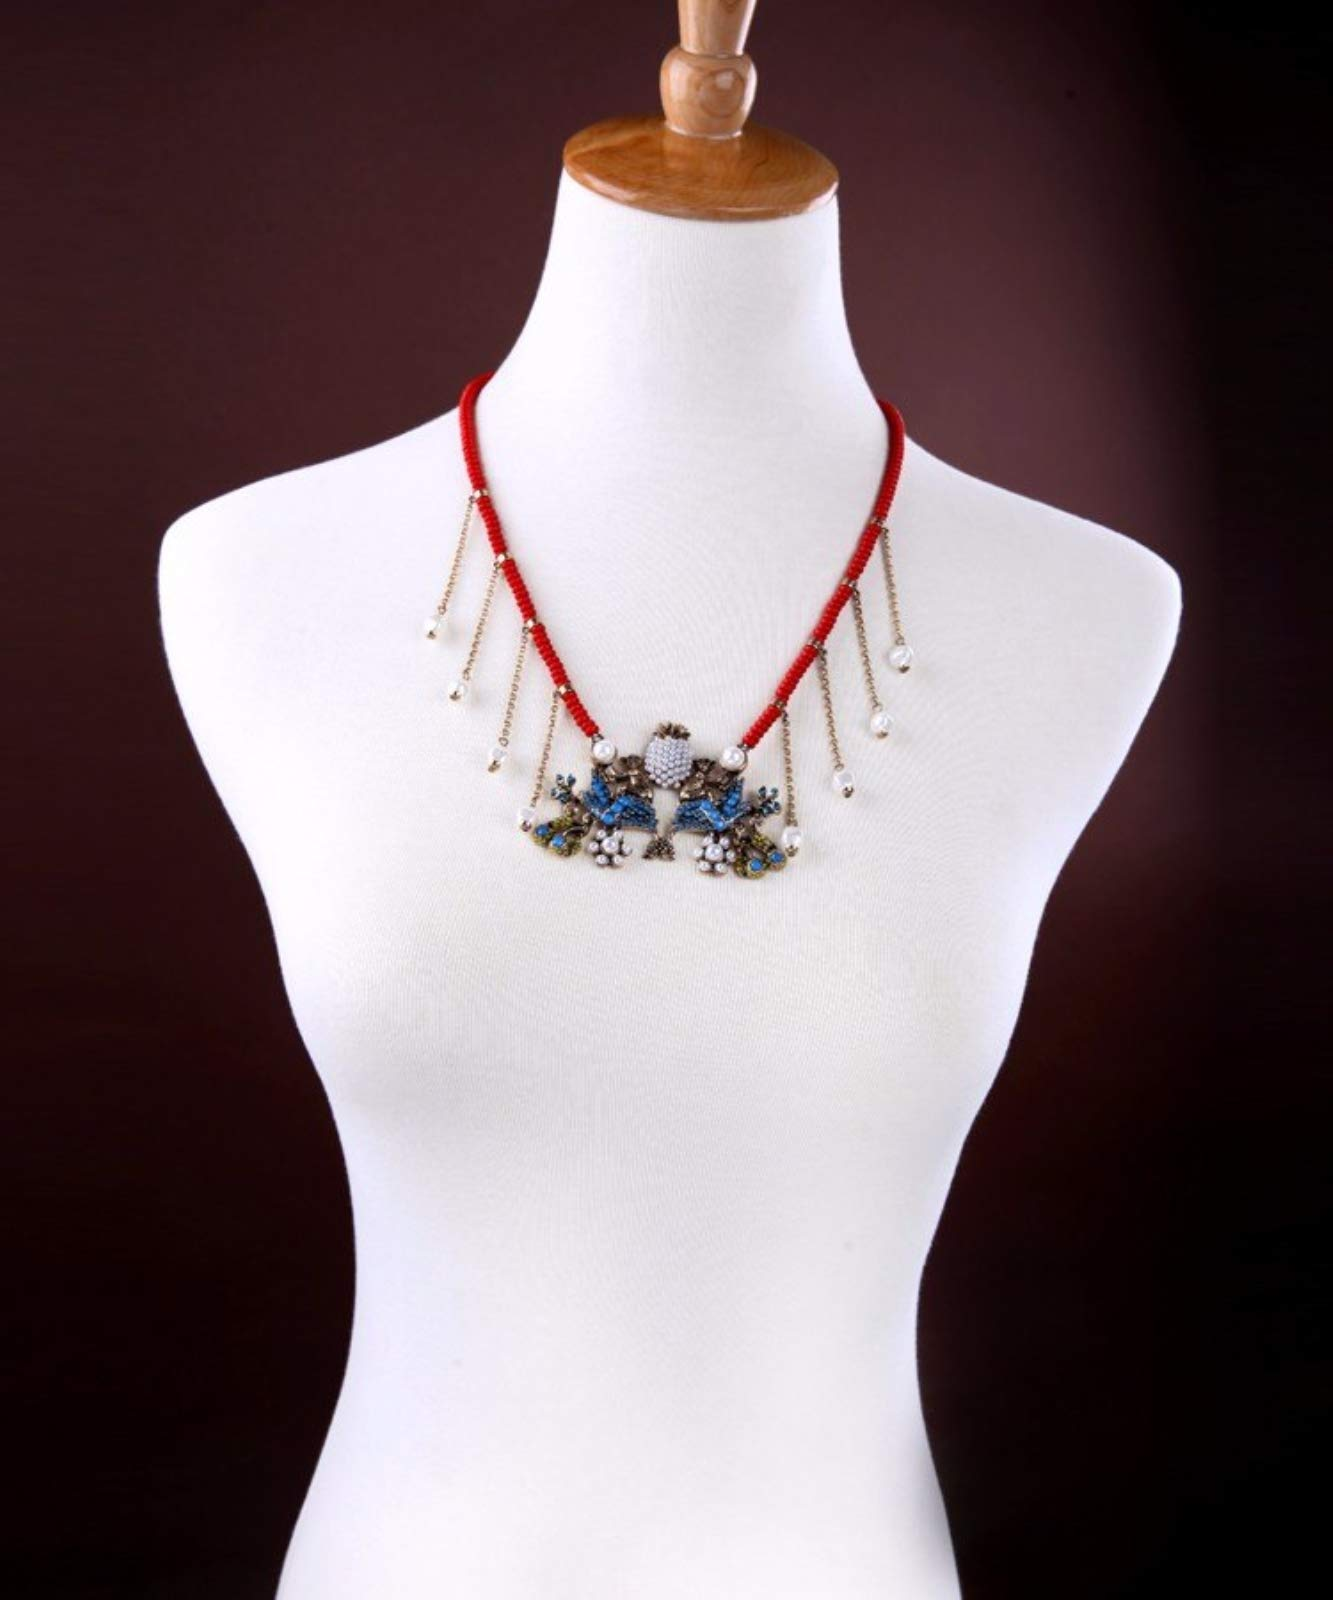 ptk12 New Weave Red Beads Chain Bib Statement Necklace Gold Color Monkey Animal